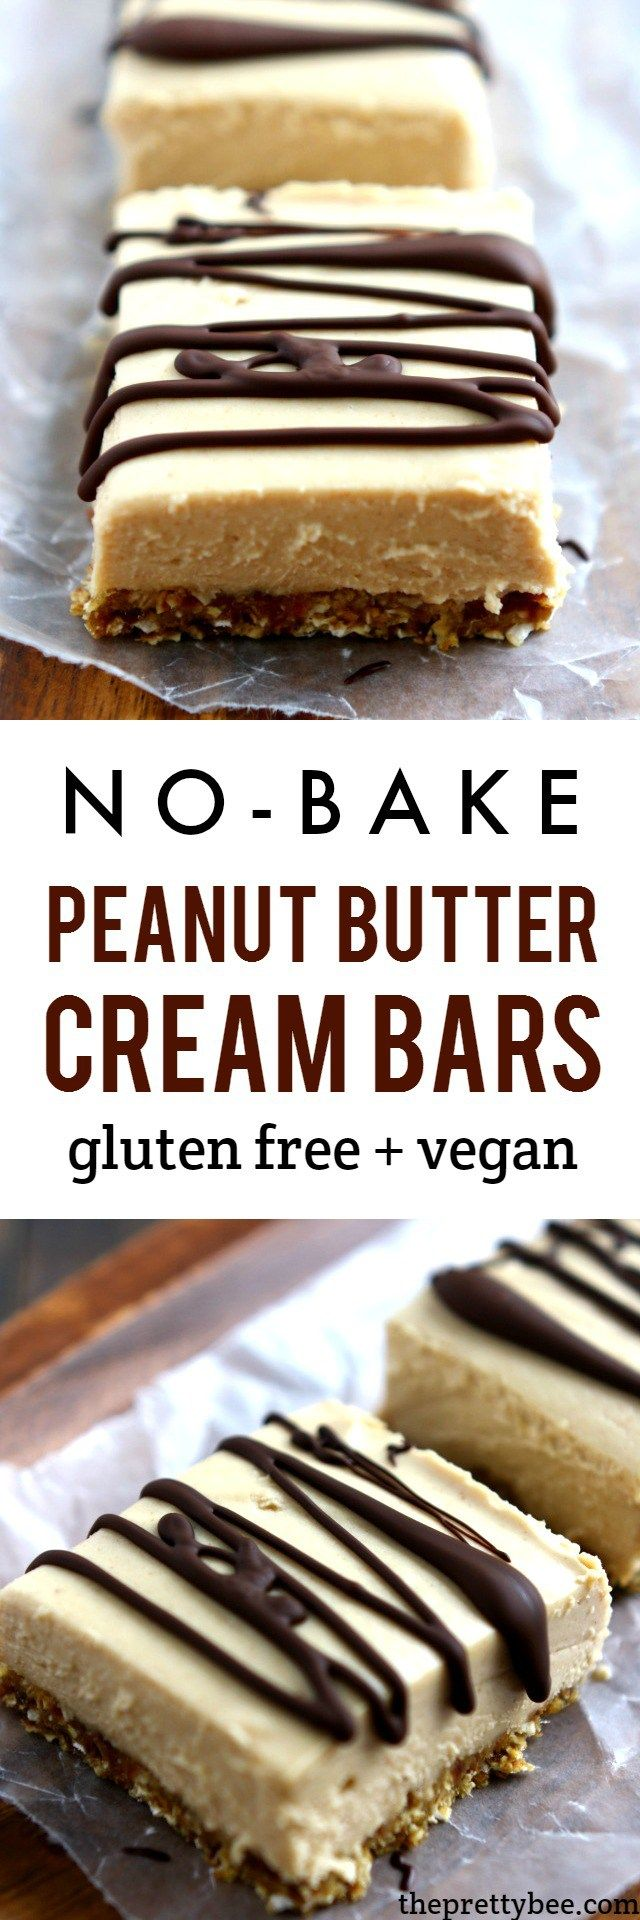 手机壳定制air flight  mid Light and delicious no bake peanut butter cream bars are a wonderfully decadent dessert  Vegan amp Gluten free